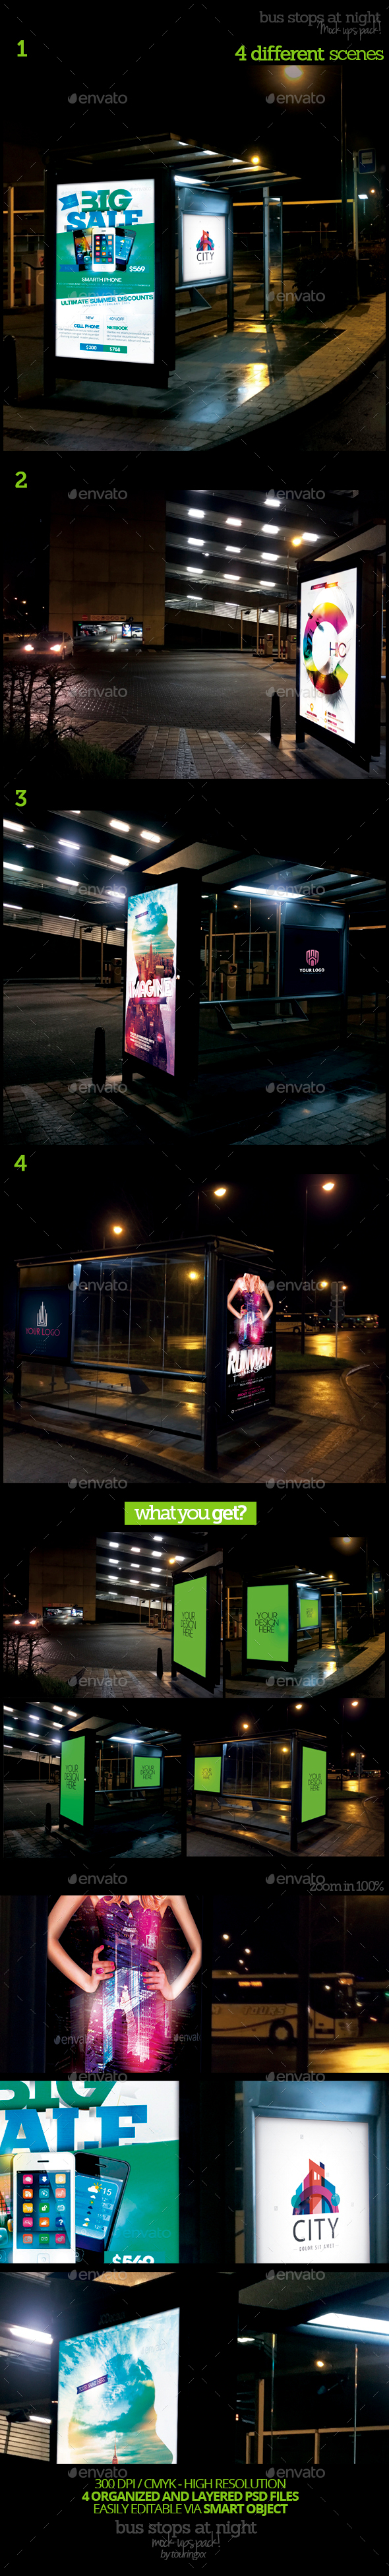 Bus Stops At Night Mock-Ups Pack - Product Mock-Ups Graphics